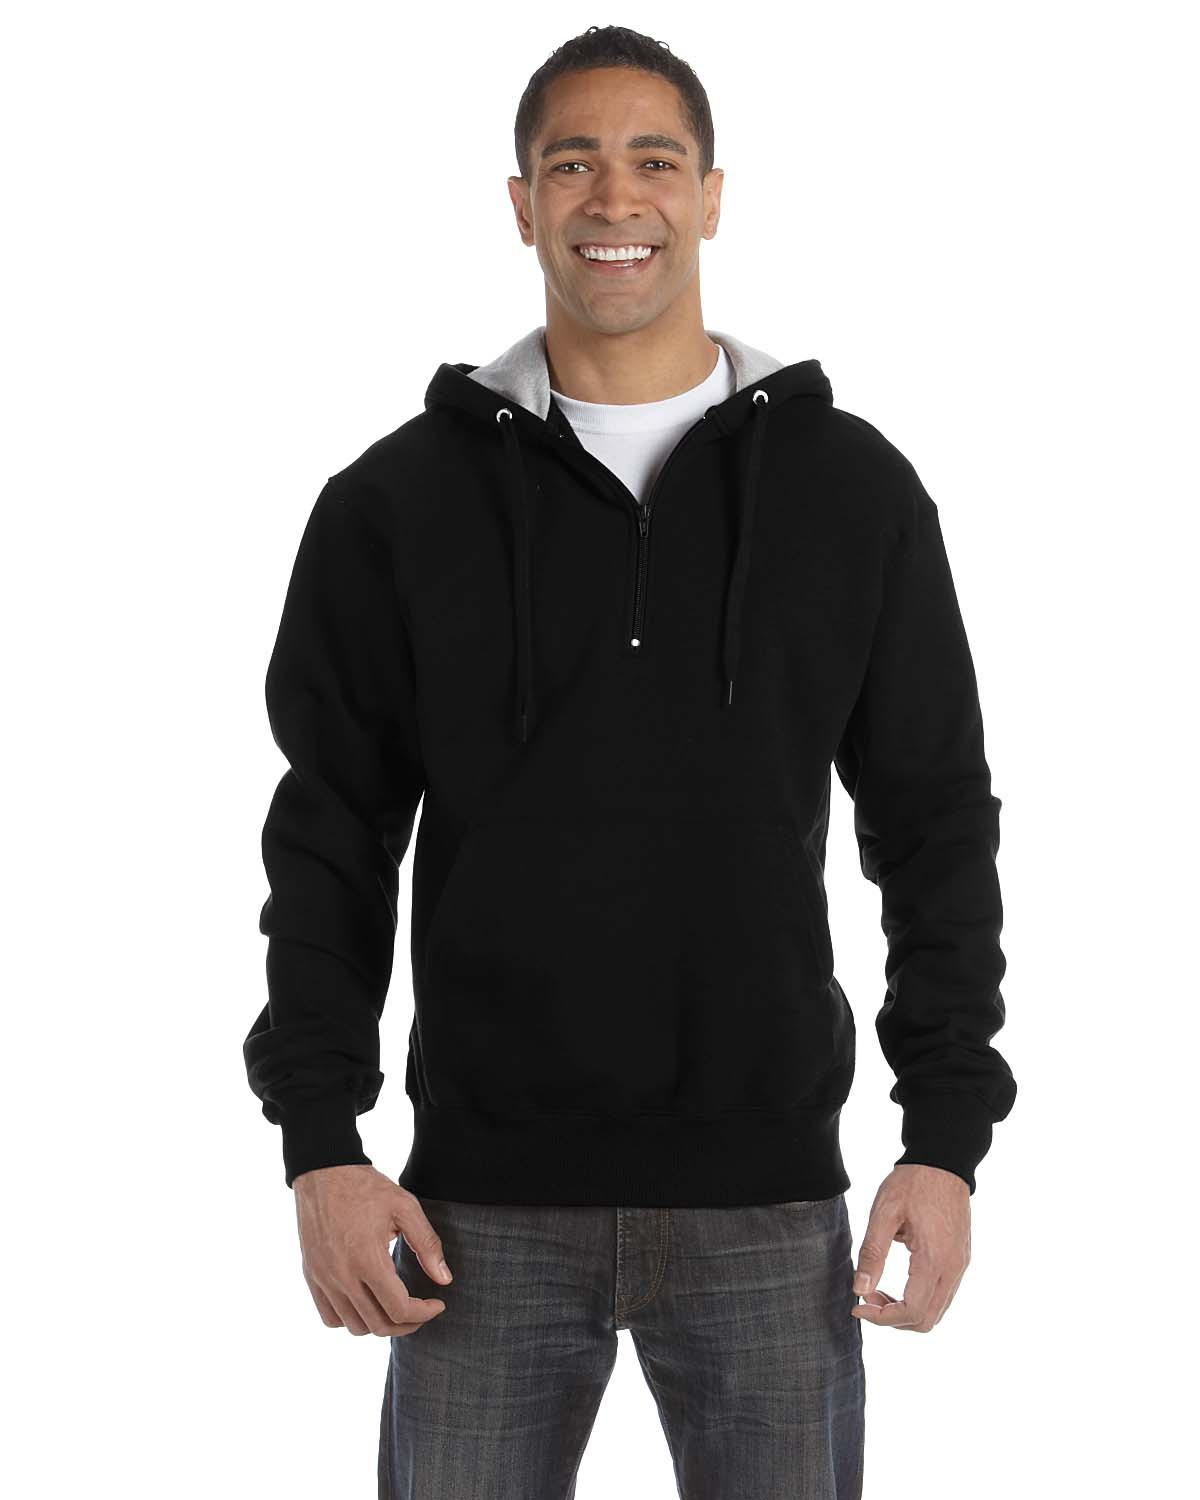 Cotton Max 9.7 oz. Quarter-Zip Hood